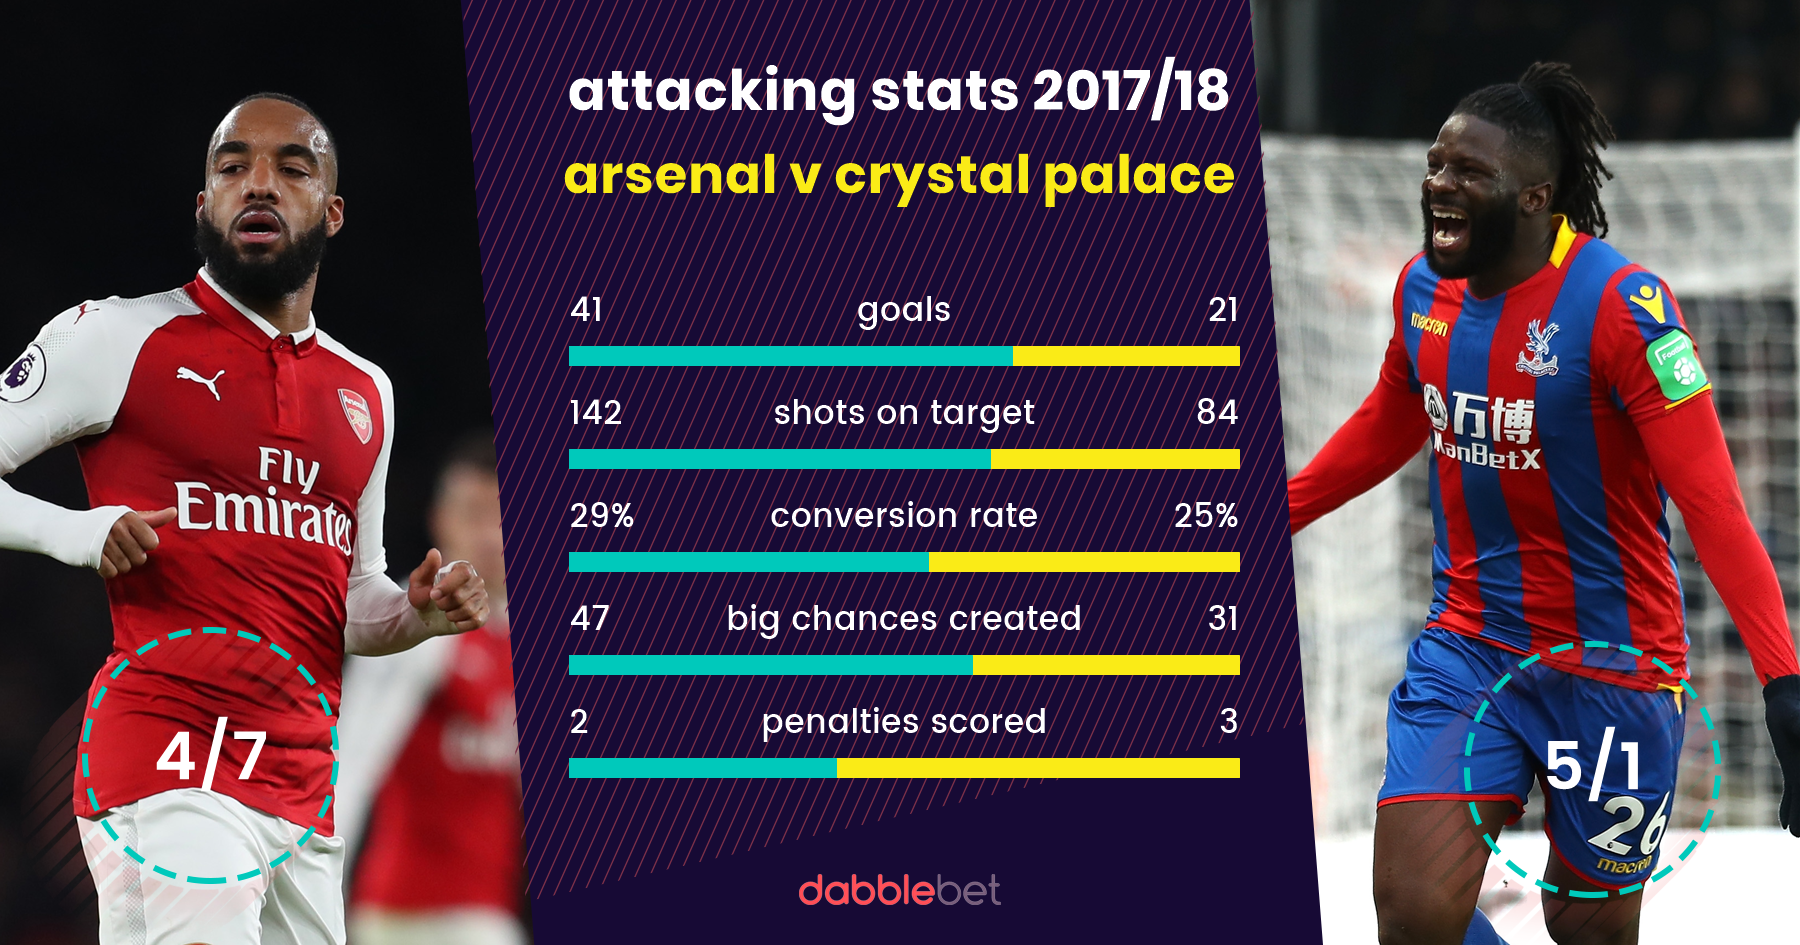 Arsenal Crystal Palace graphic